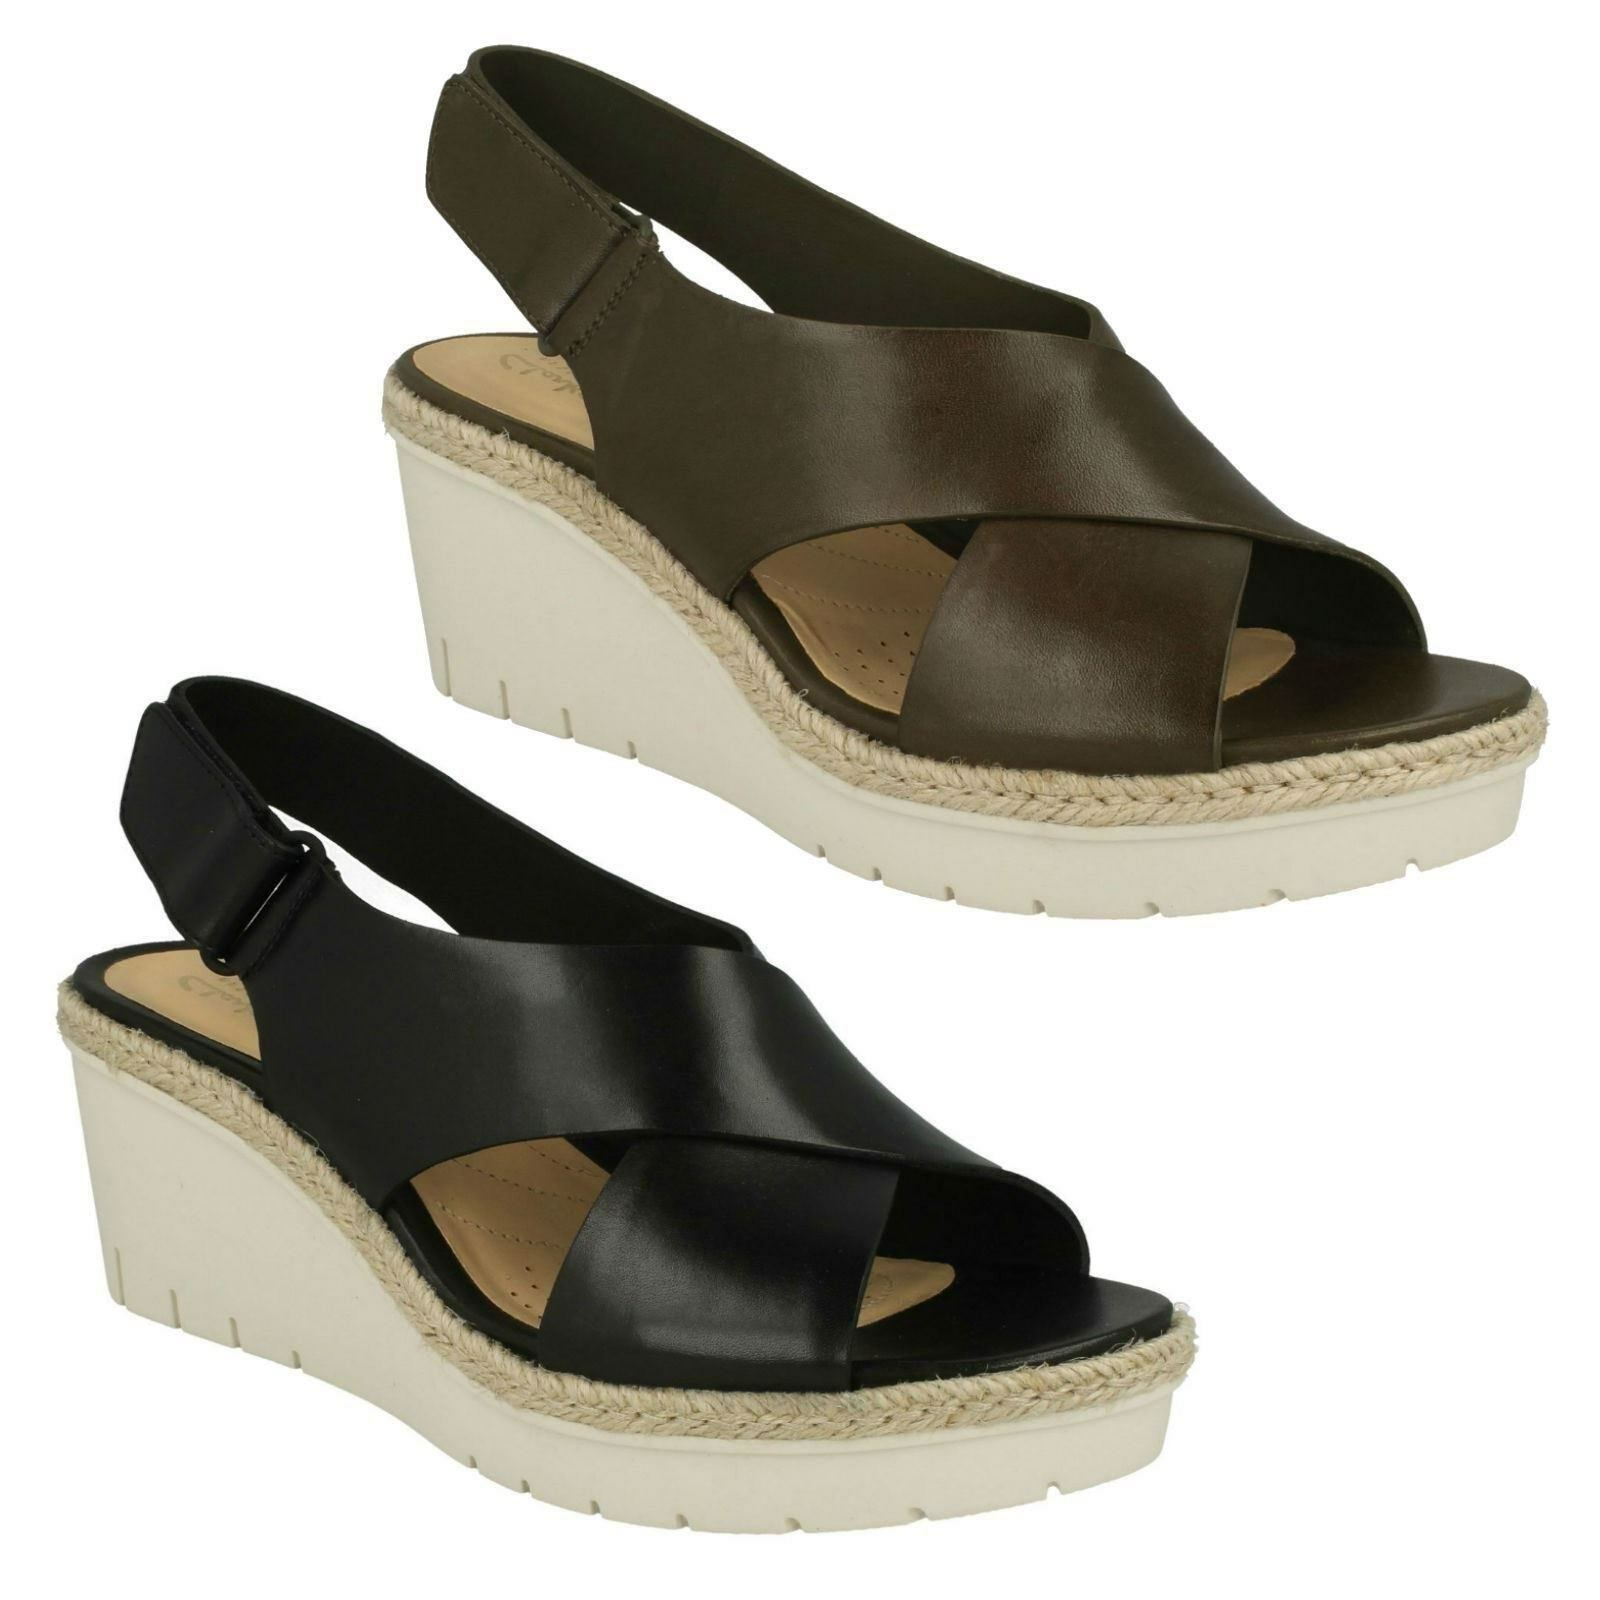 Último gran descuento LADIES CLARKS LEATHER WEDGE HEEL SLINGBACK SMART SUMMER SANDALS SHOES PALM GLOW